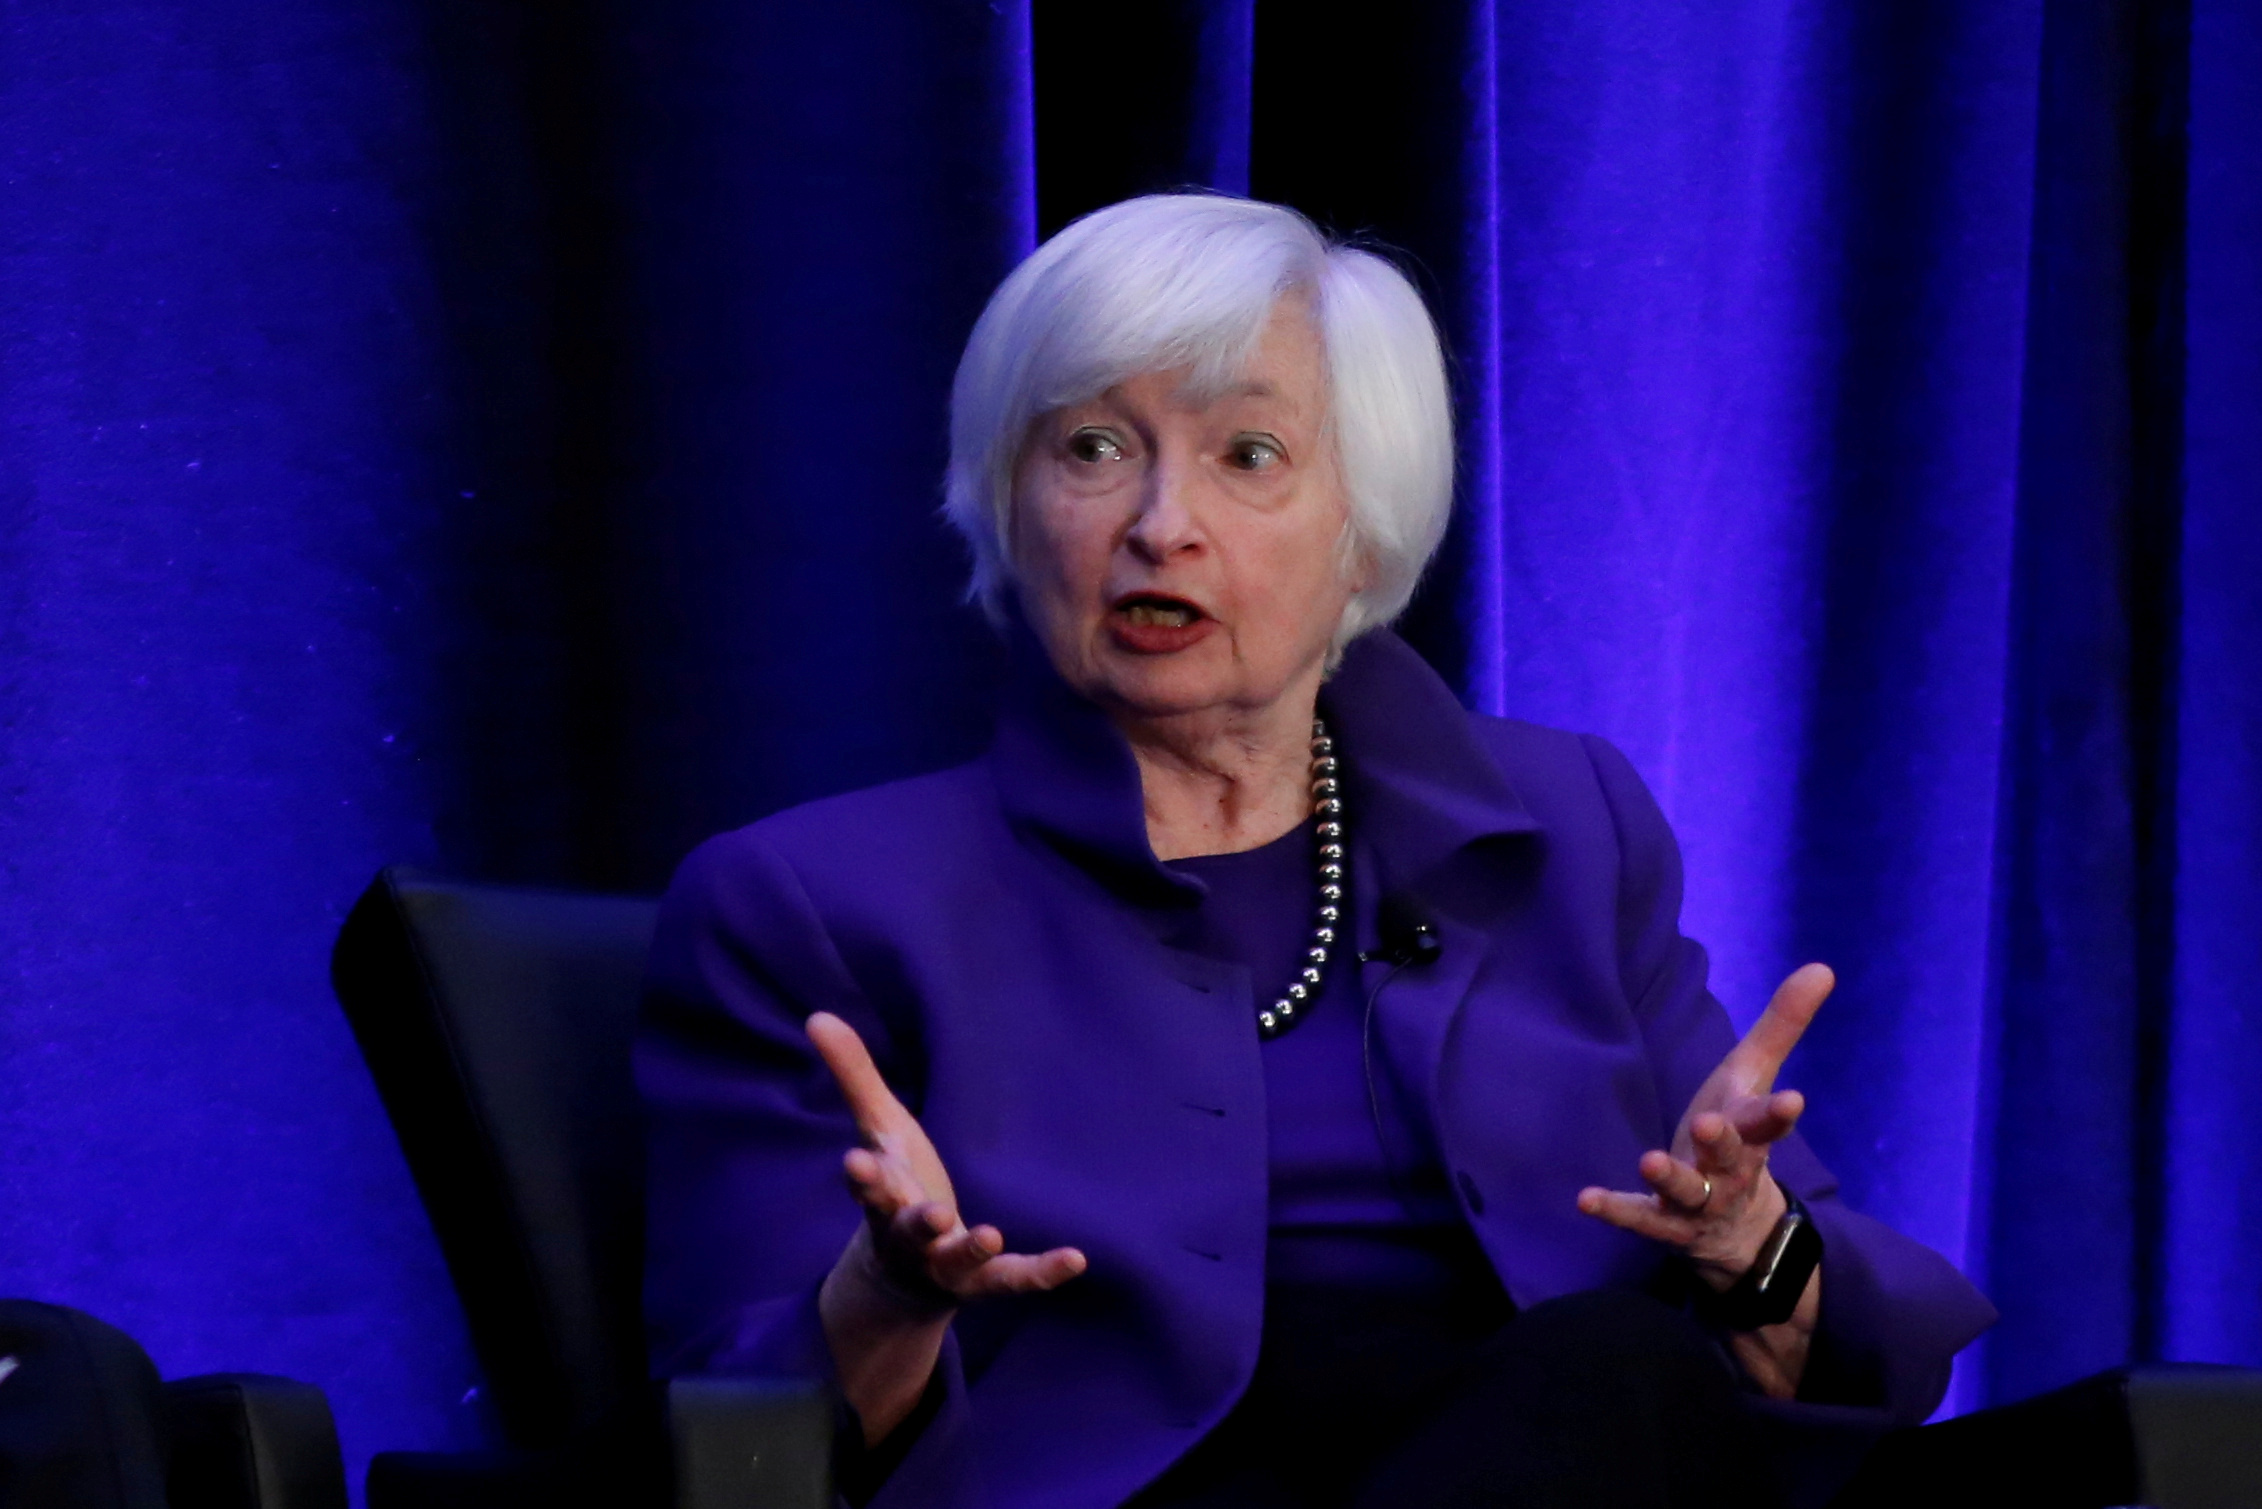 Former Federal Reserve Chairman Janet Yellen speaks during a panel discussion at the American Economic Association/Allied Social Science Association (ASSA) 2019 meeting in Atlanta, Georgia, U.S., January 4, 2019.  REUTERS/Christopher Aluka Berry